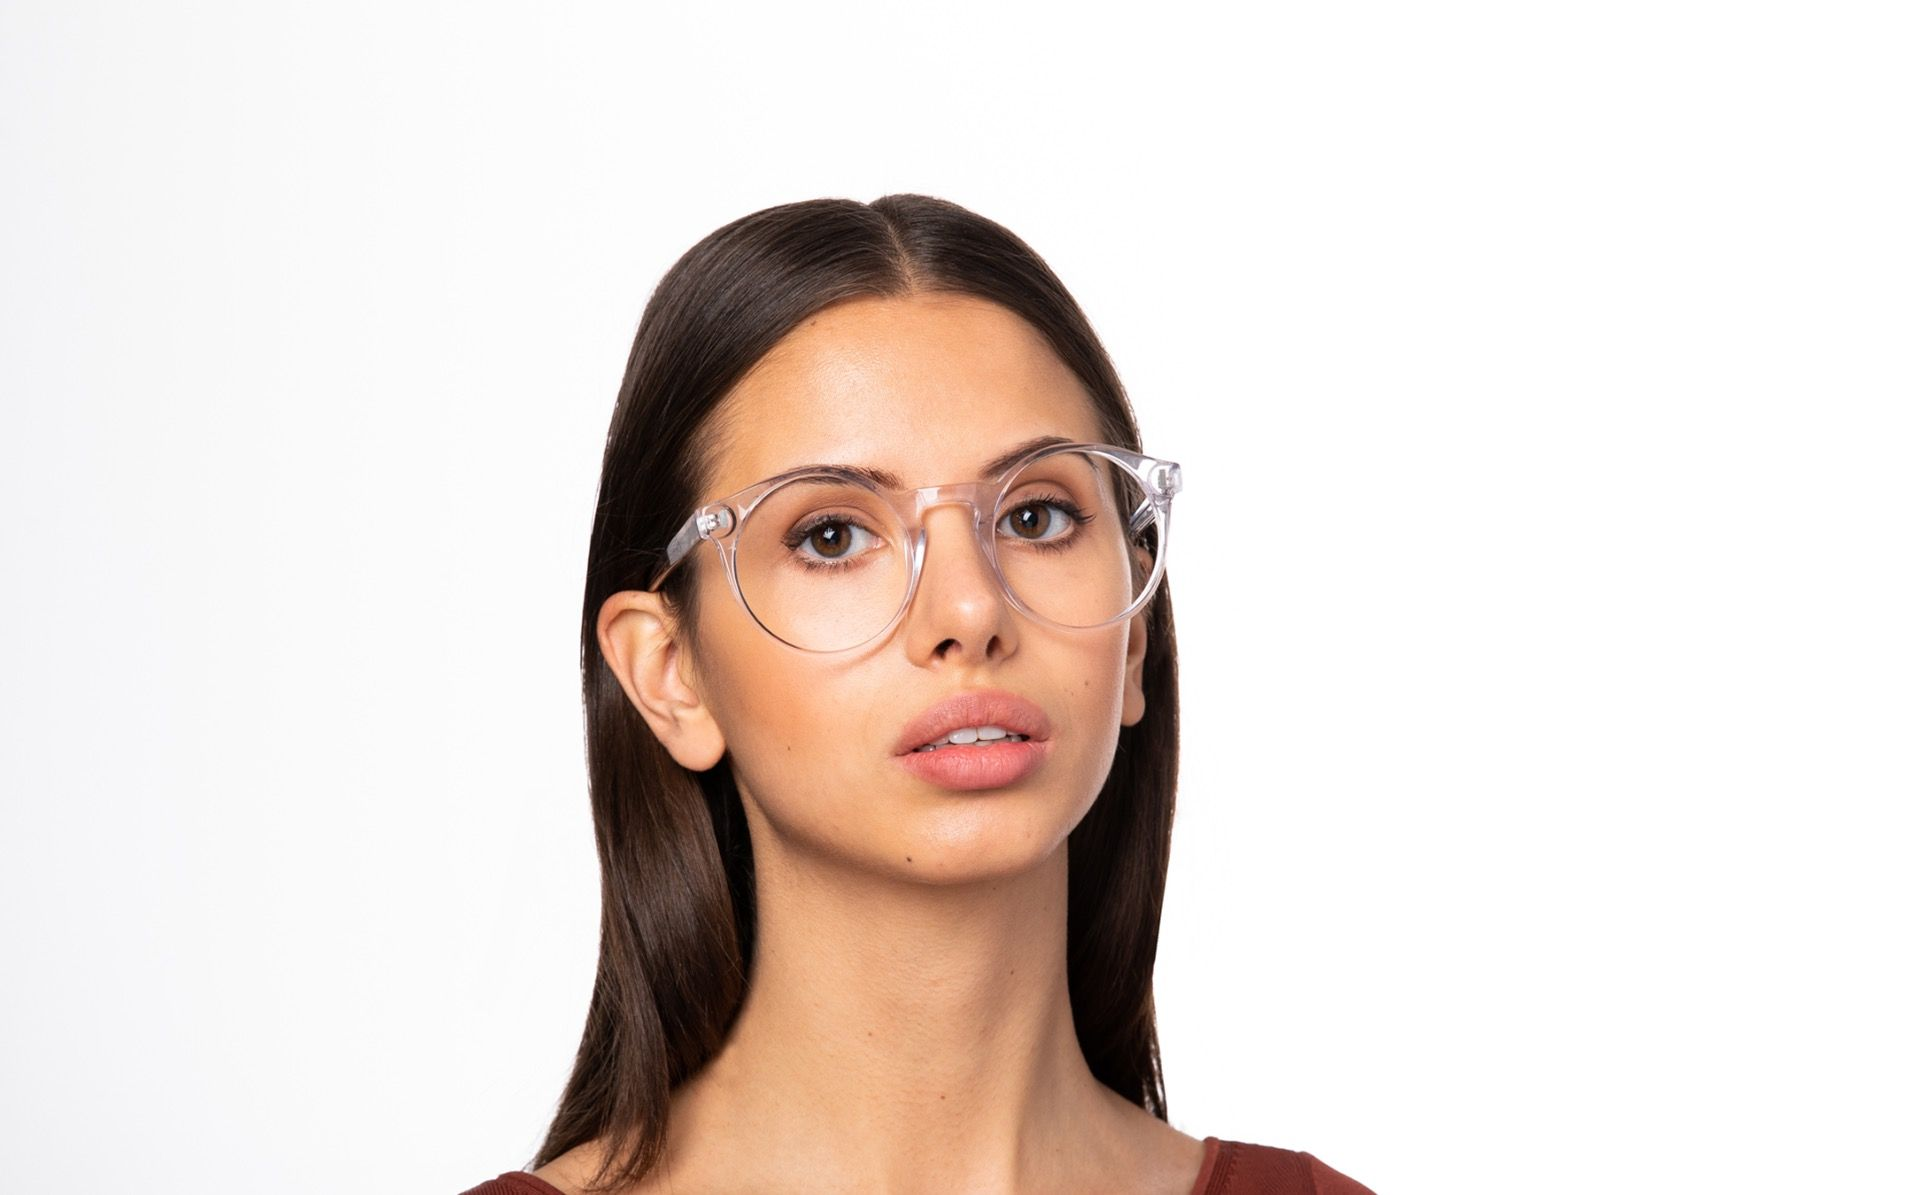 kepler polette glasses model view 02